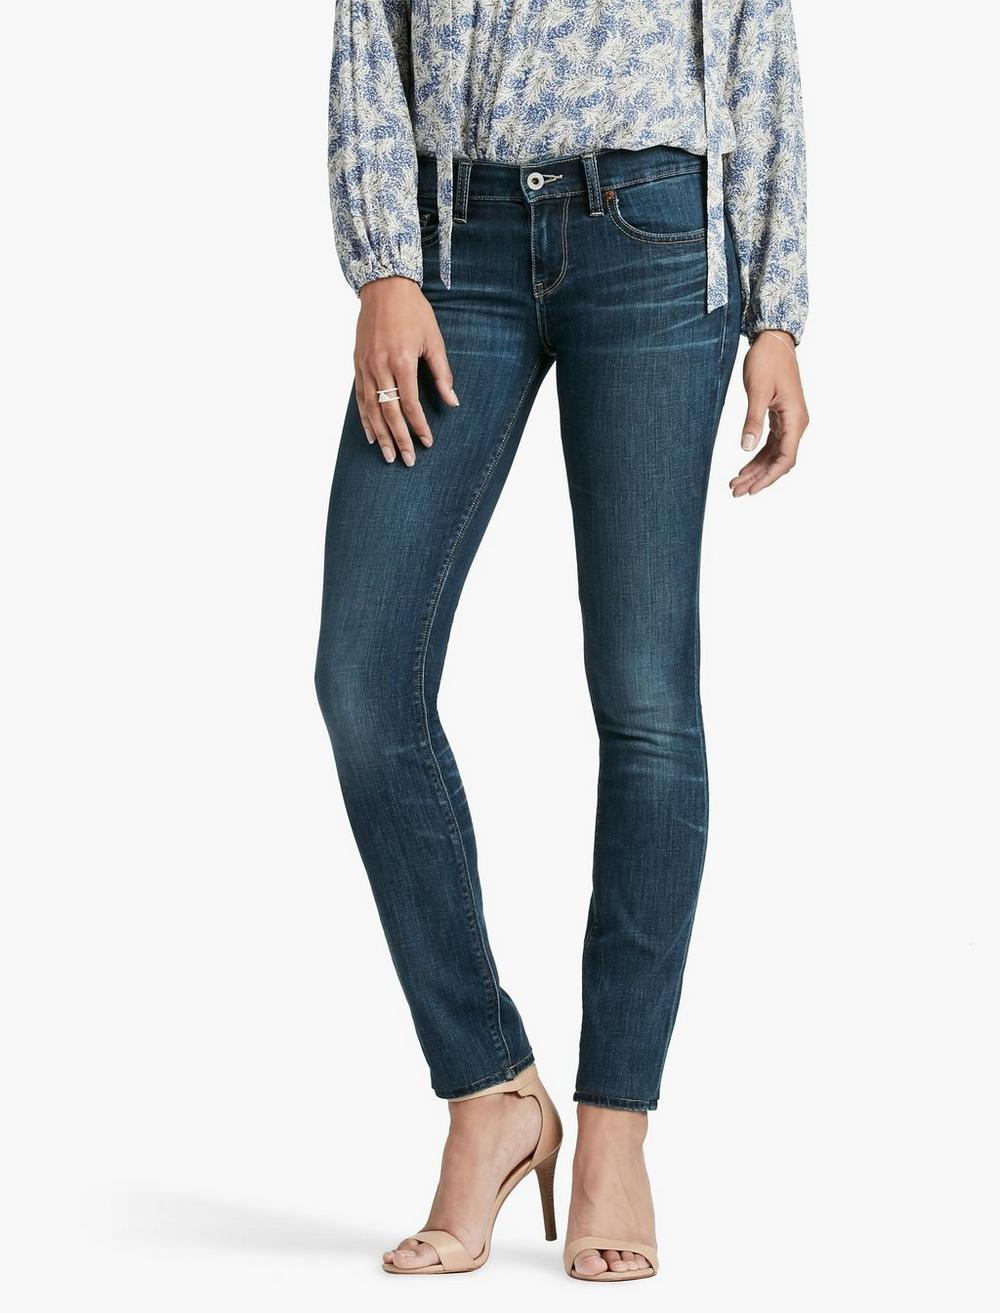 SOFIA MID RISE SKINNY JEAN IN BARRIER, image 1